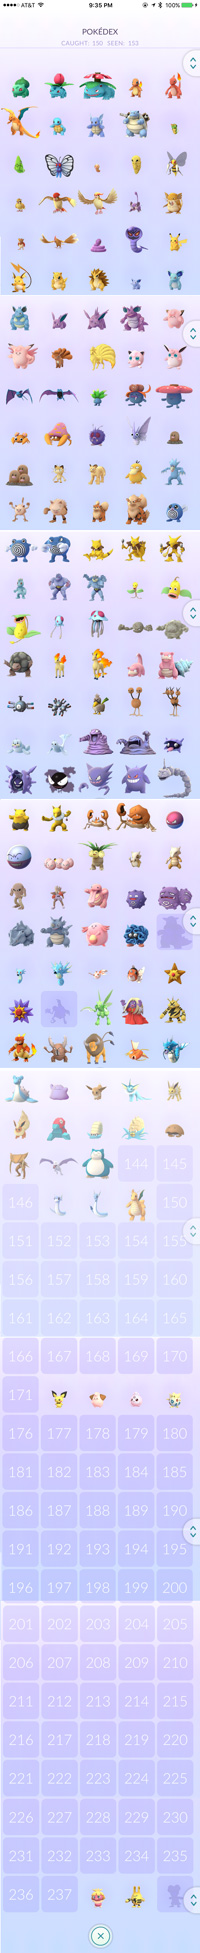 full north american pokedex